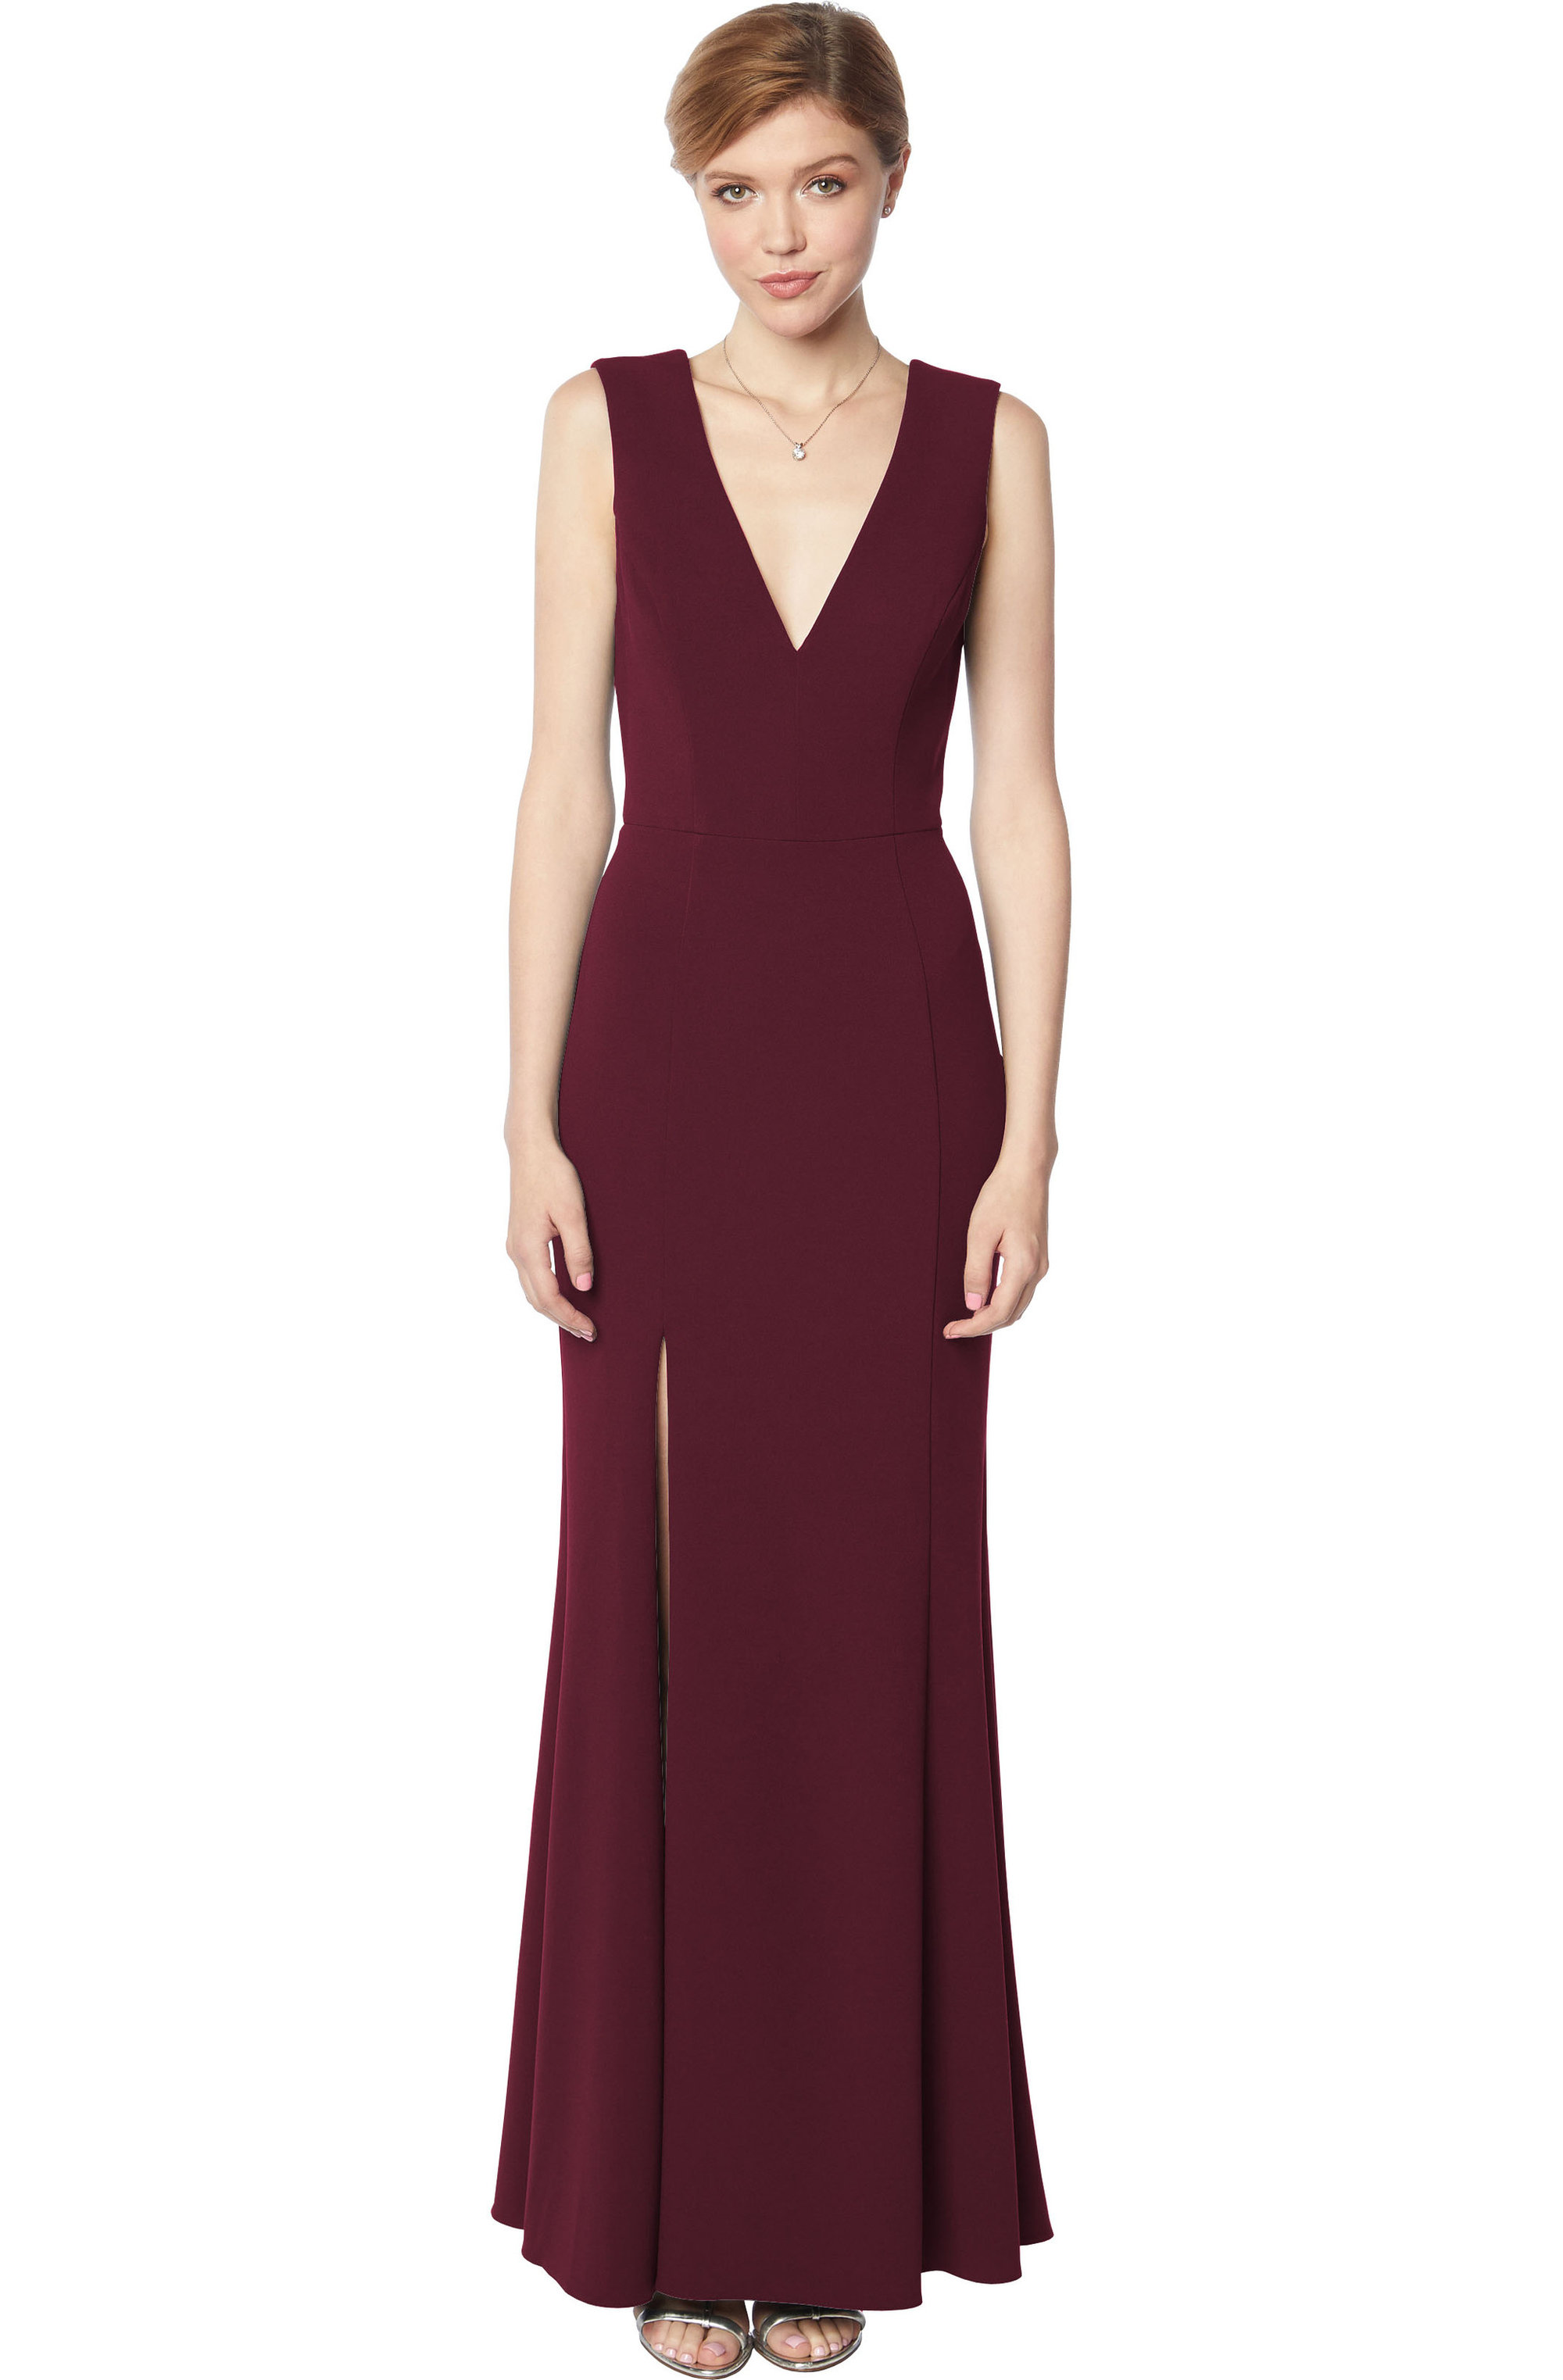 Bill Levkoff WINE Stretch Crepe Sleeveless A-line gown, $210.00 Front